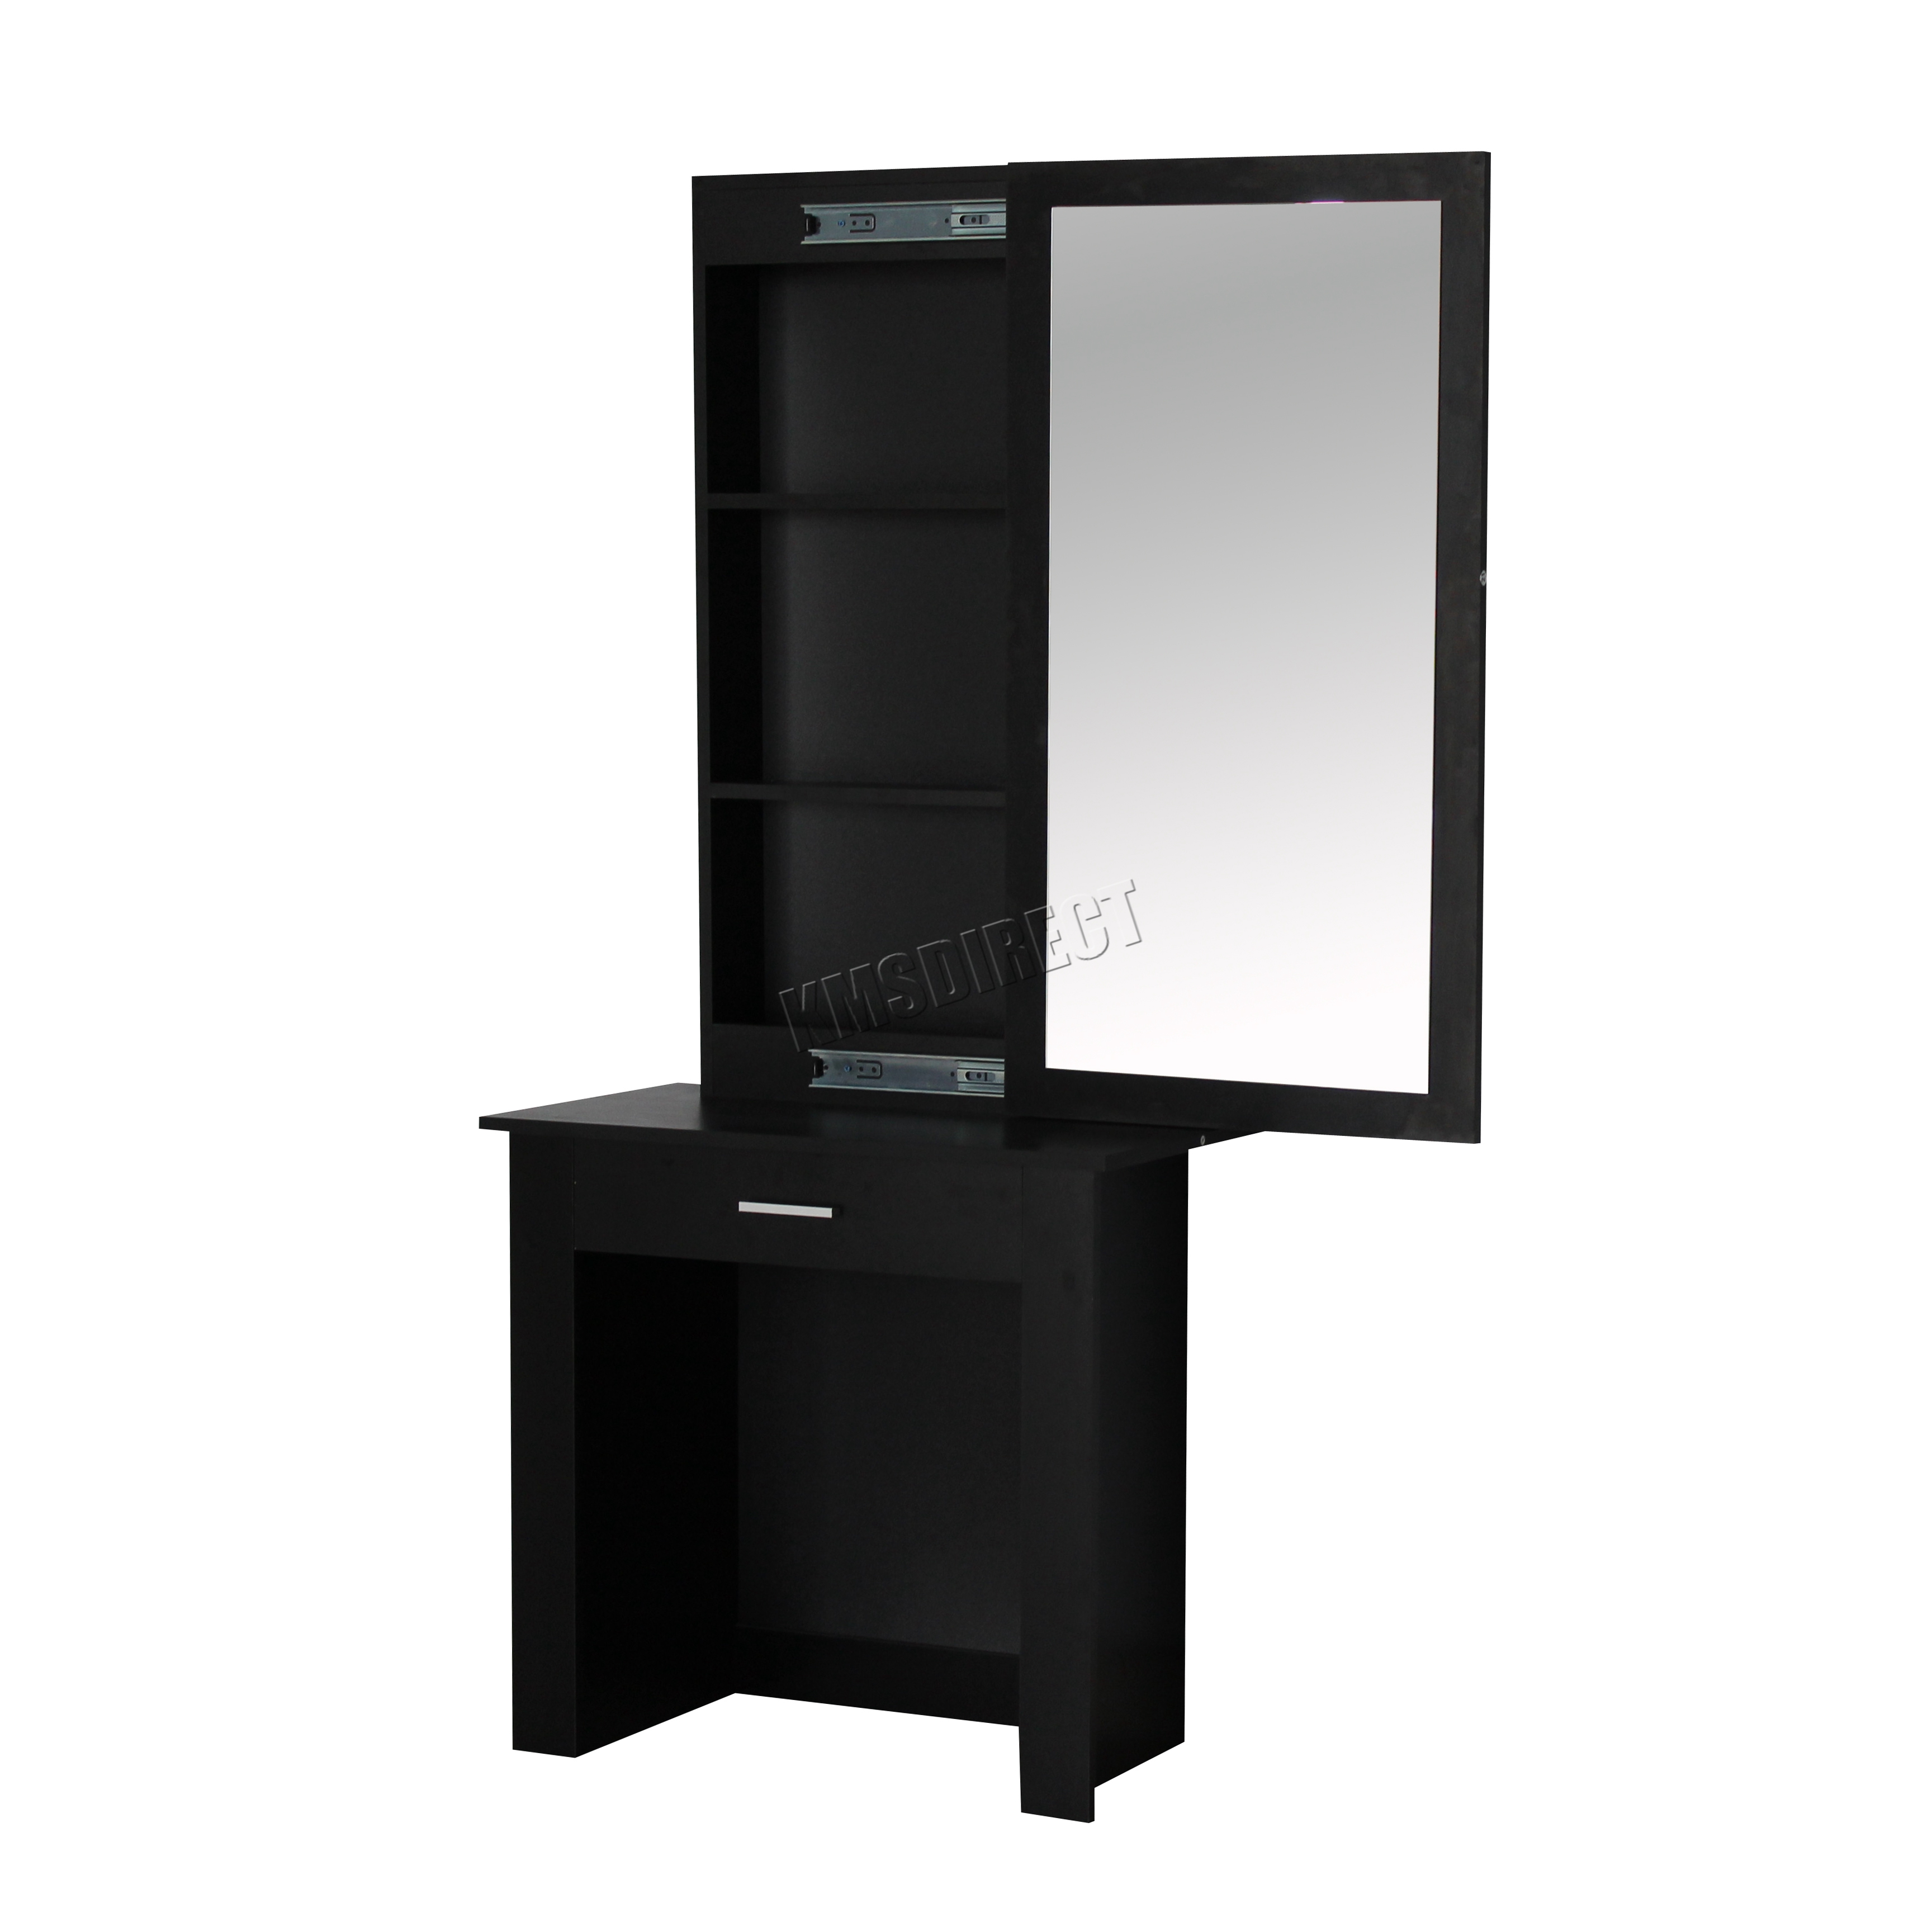 Sentinel FoxHunter Wooden Makeup Jewelry Dressing Table With Sliding Mirror  DT04 Black. FoxHunter Wooden Makeup Jewelry Dressing Table With Sliding Mirror